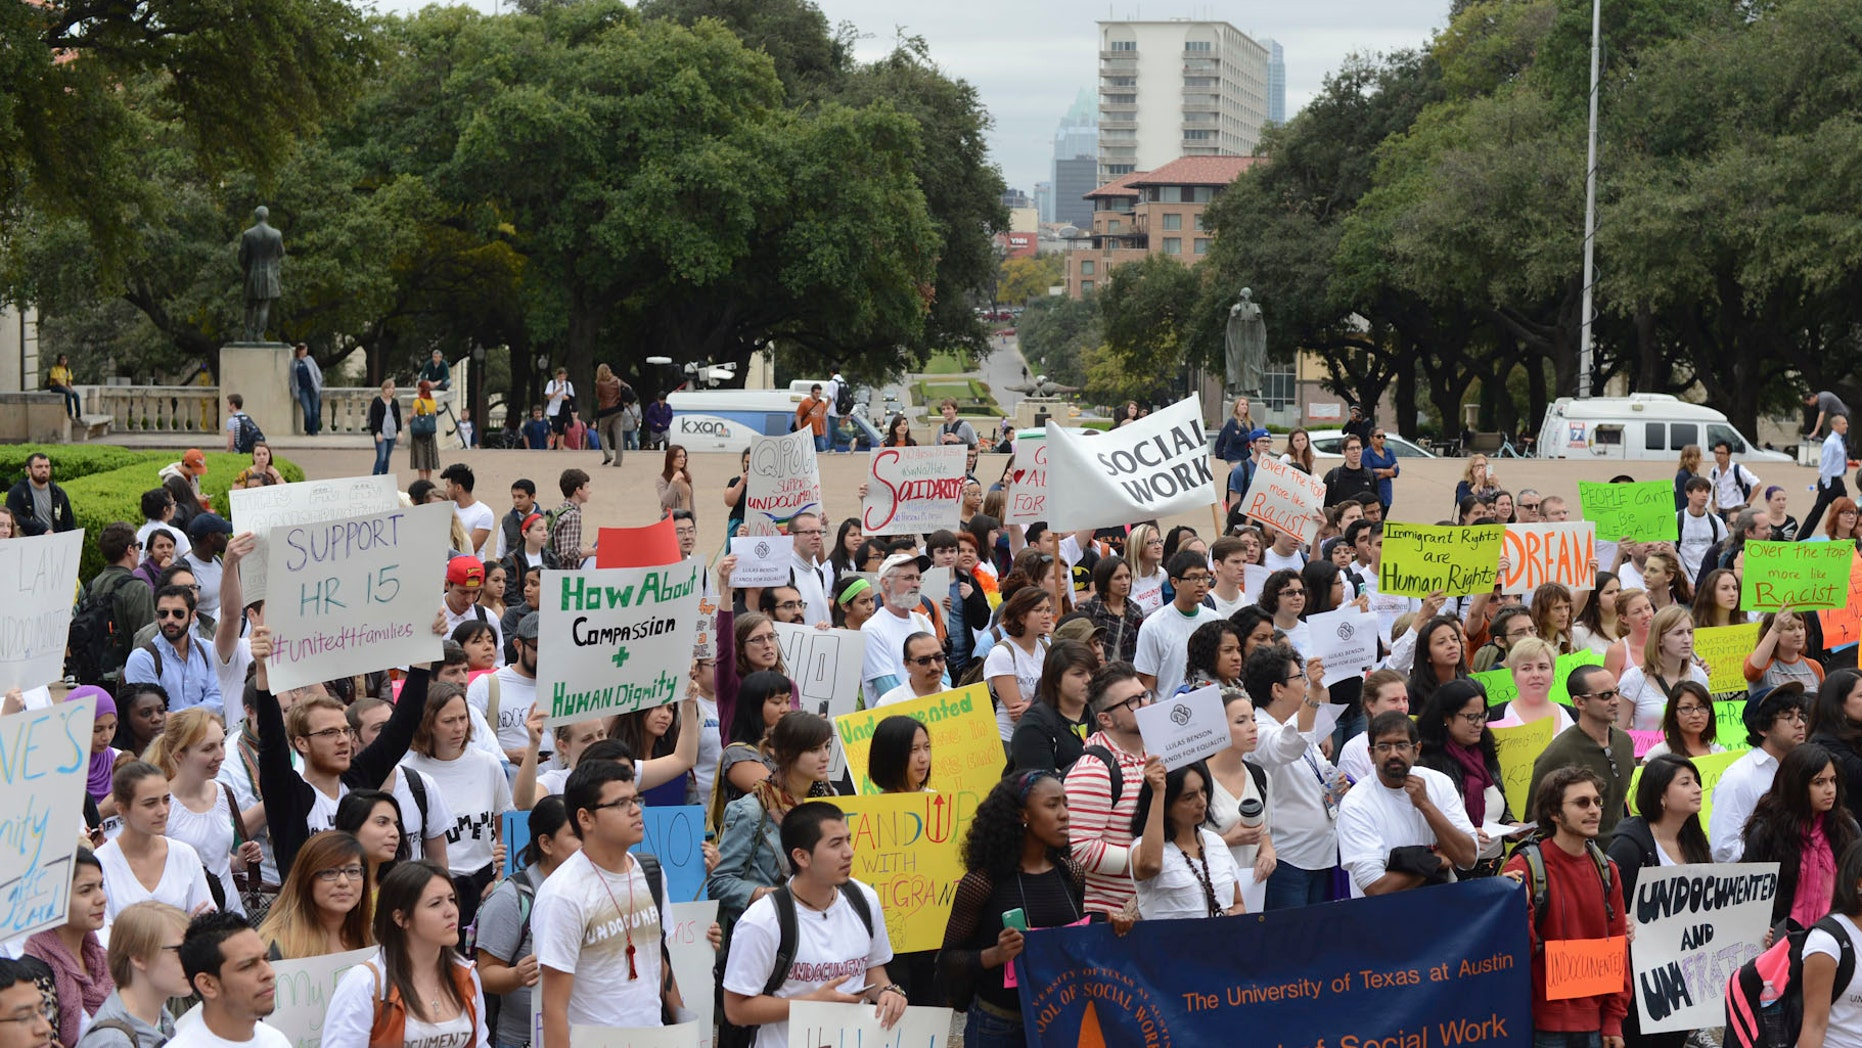 Protesters at the University of Texas in Austin, Nov. 20, 2013. Miguel Gutierrez Jr./The Daily Texan.